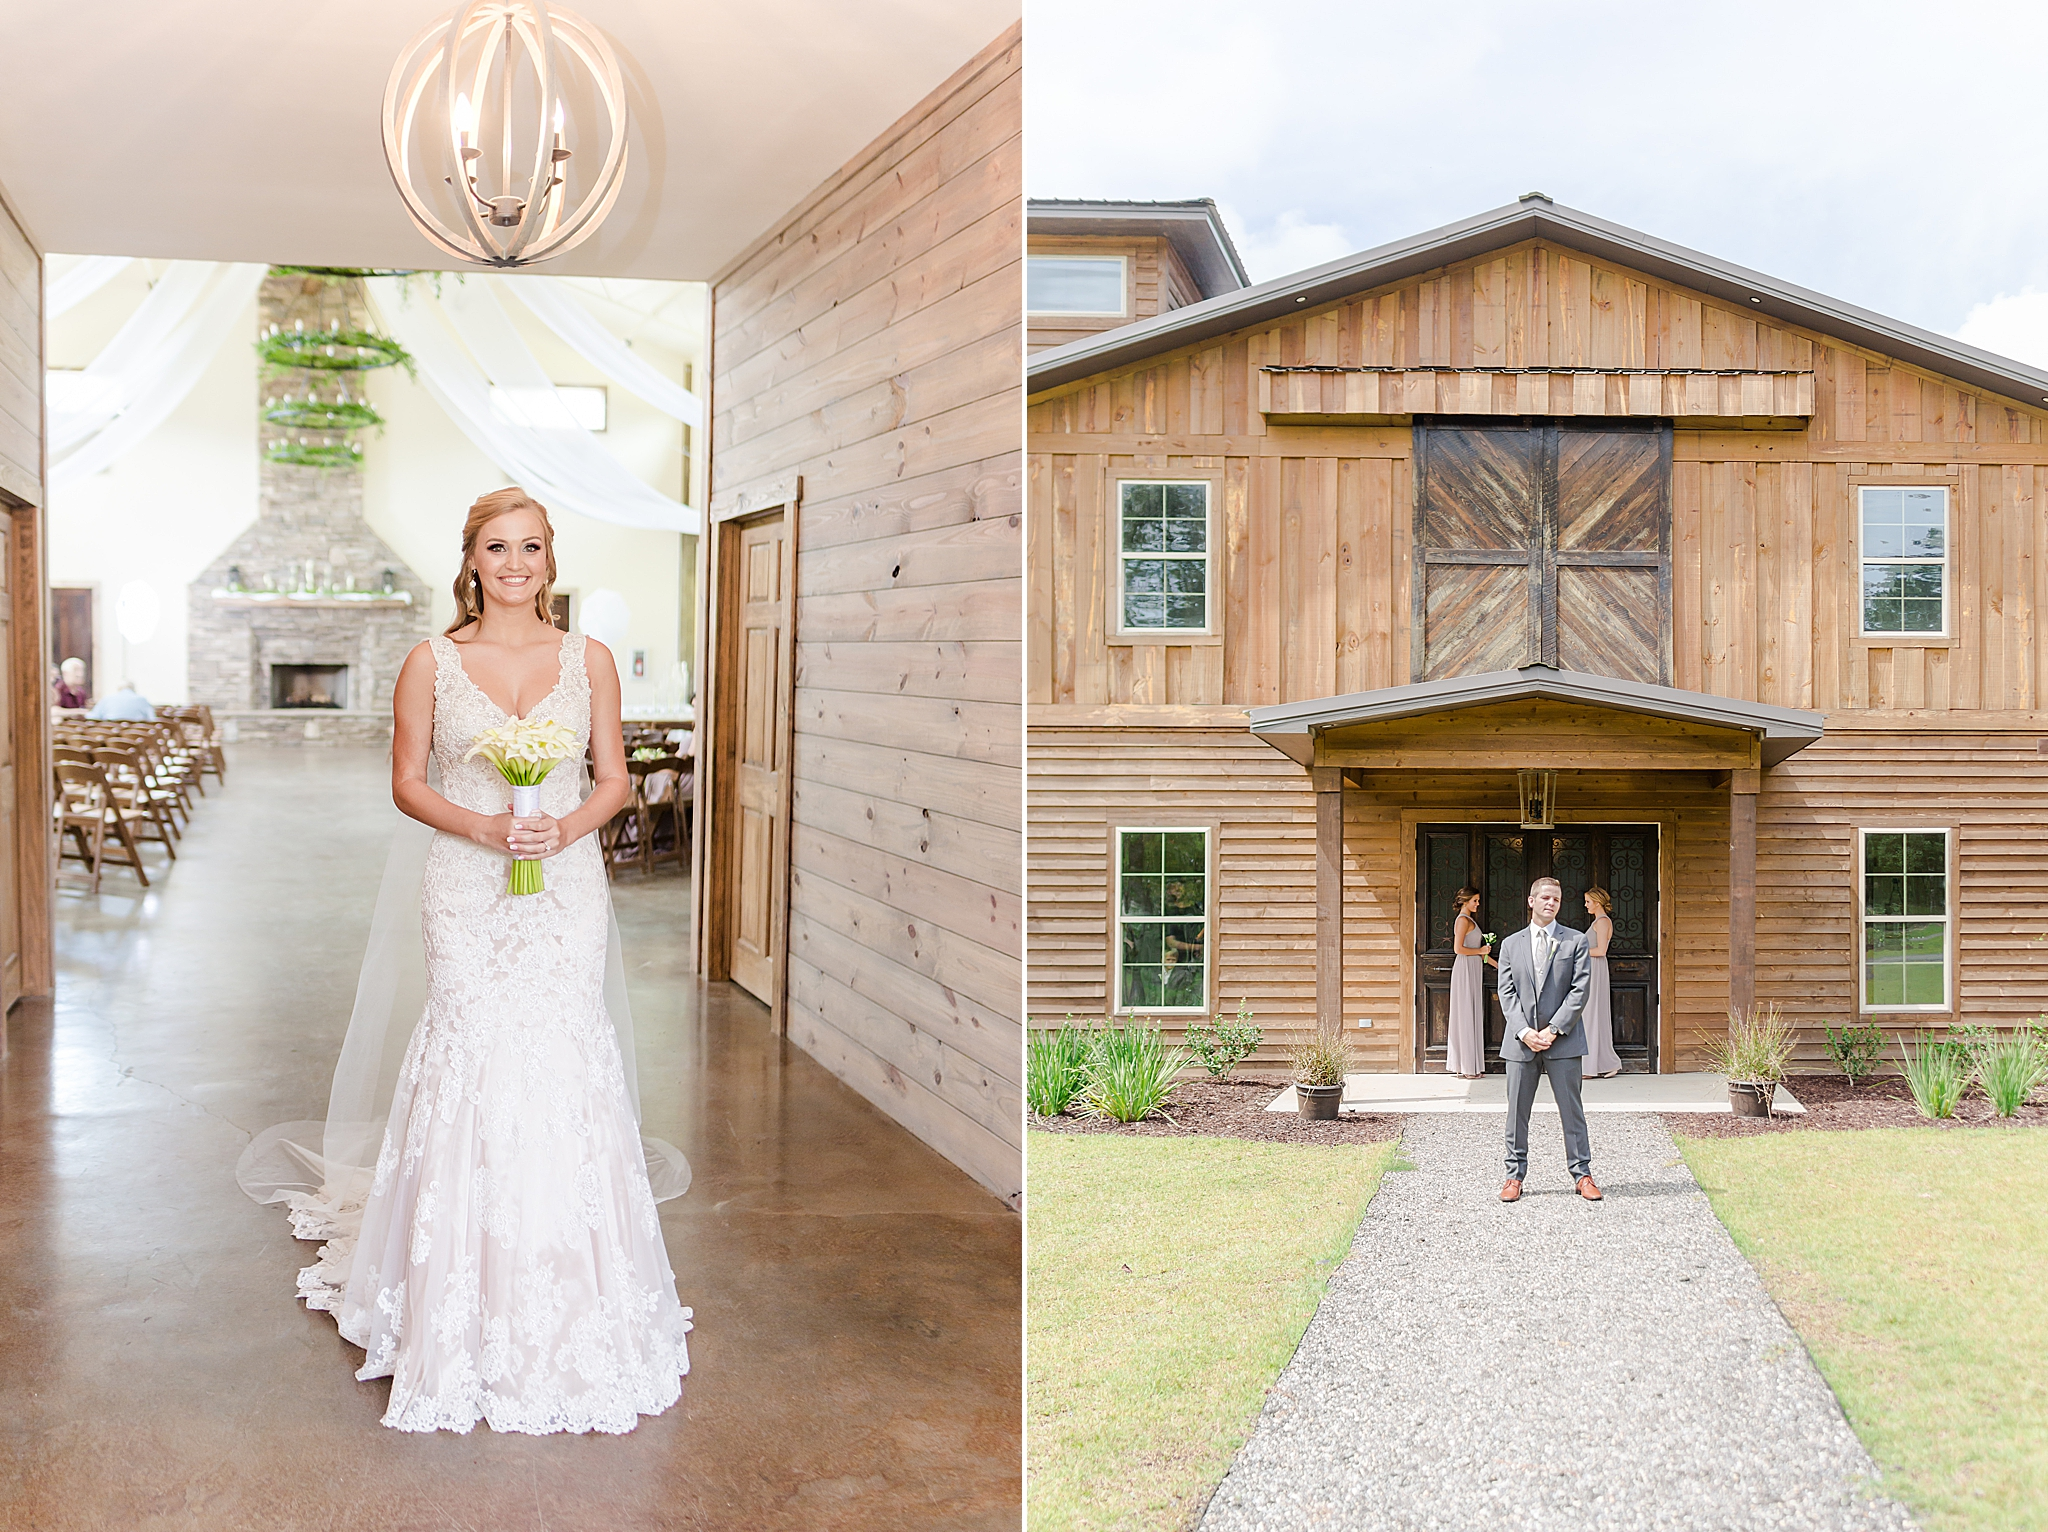 bride approaches door at Izenstone for first look